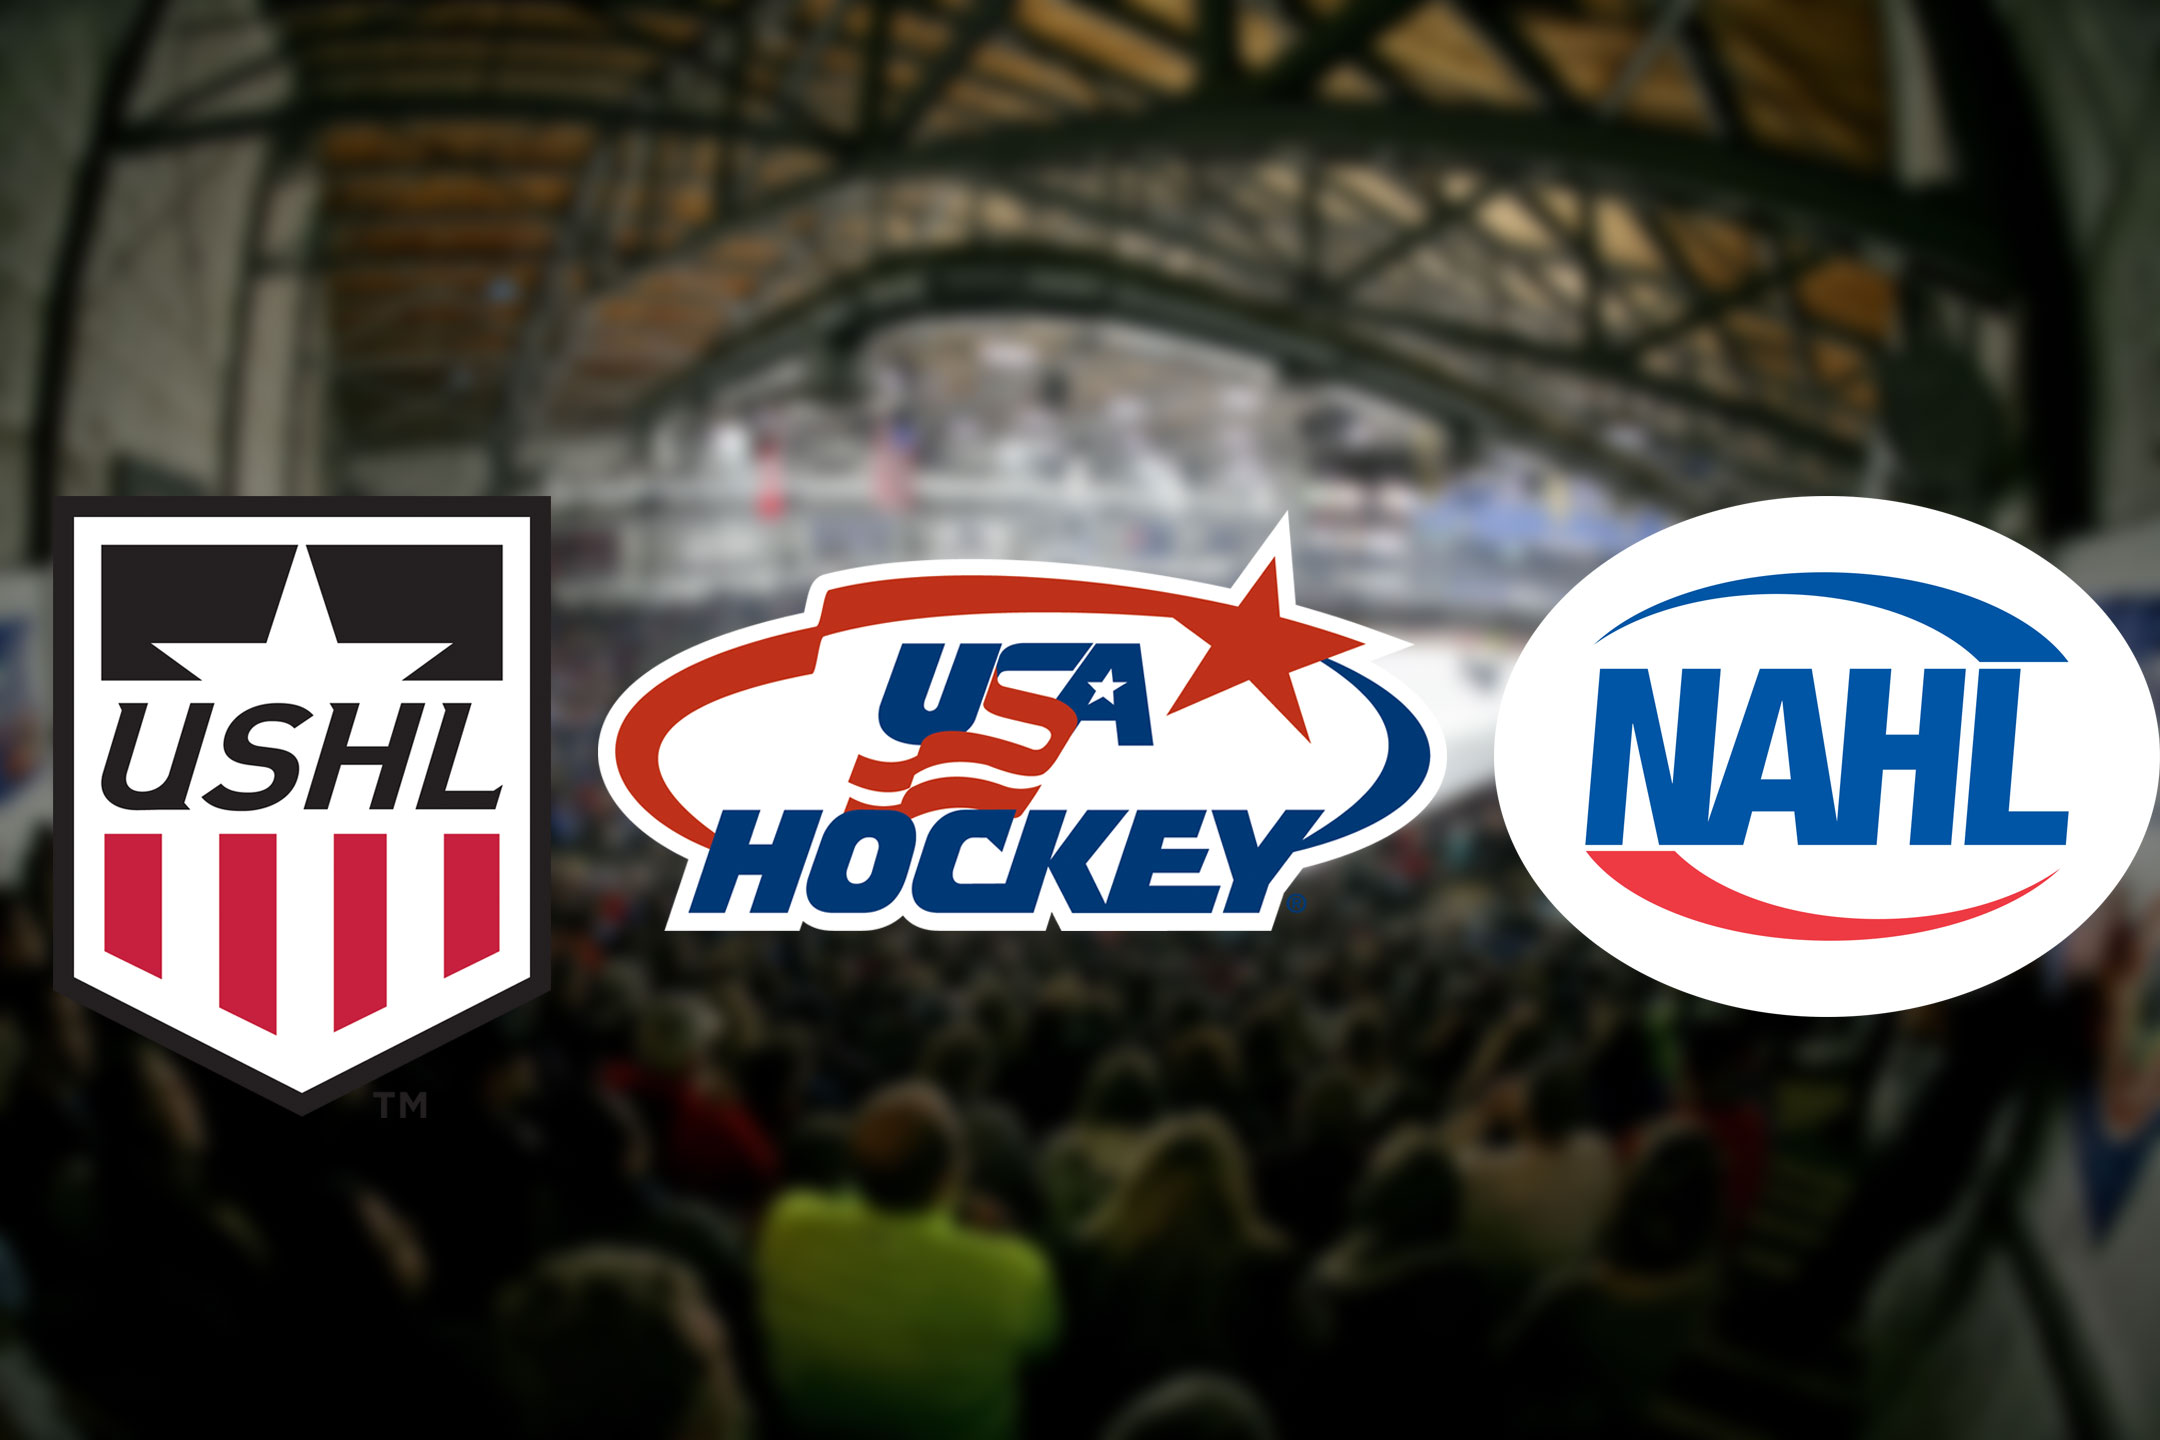 USHL: League And NAHL Announce Revised Player Movement Agreement